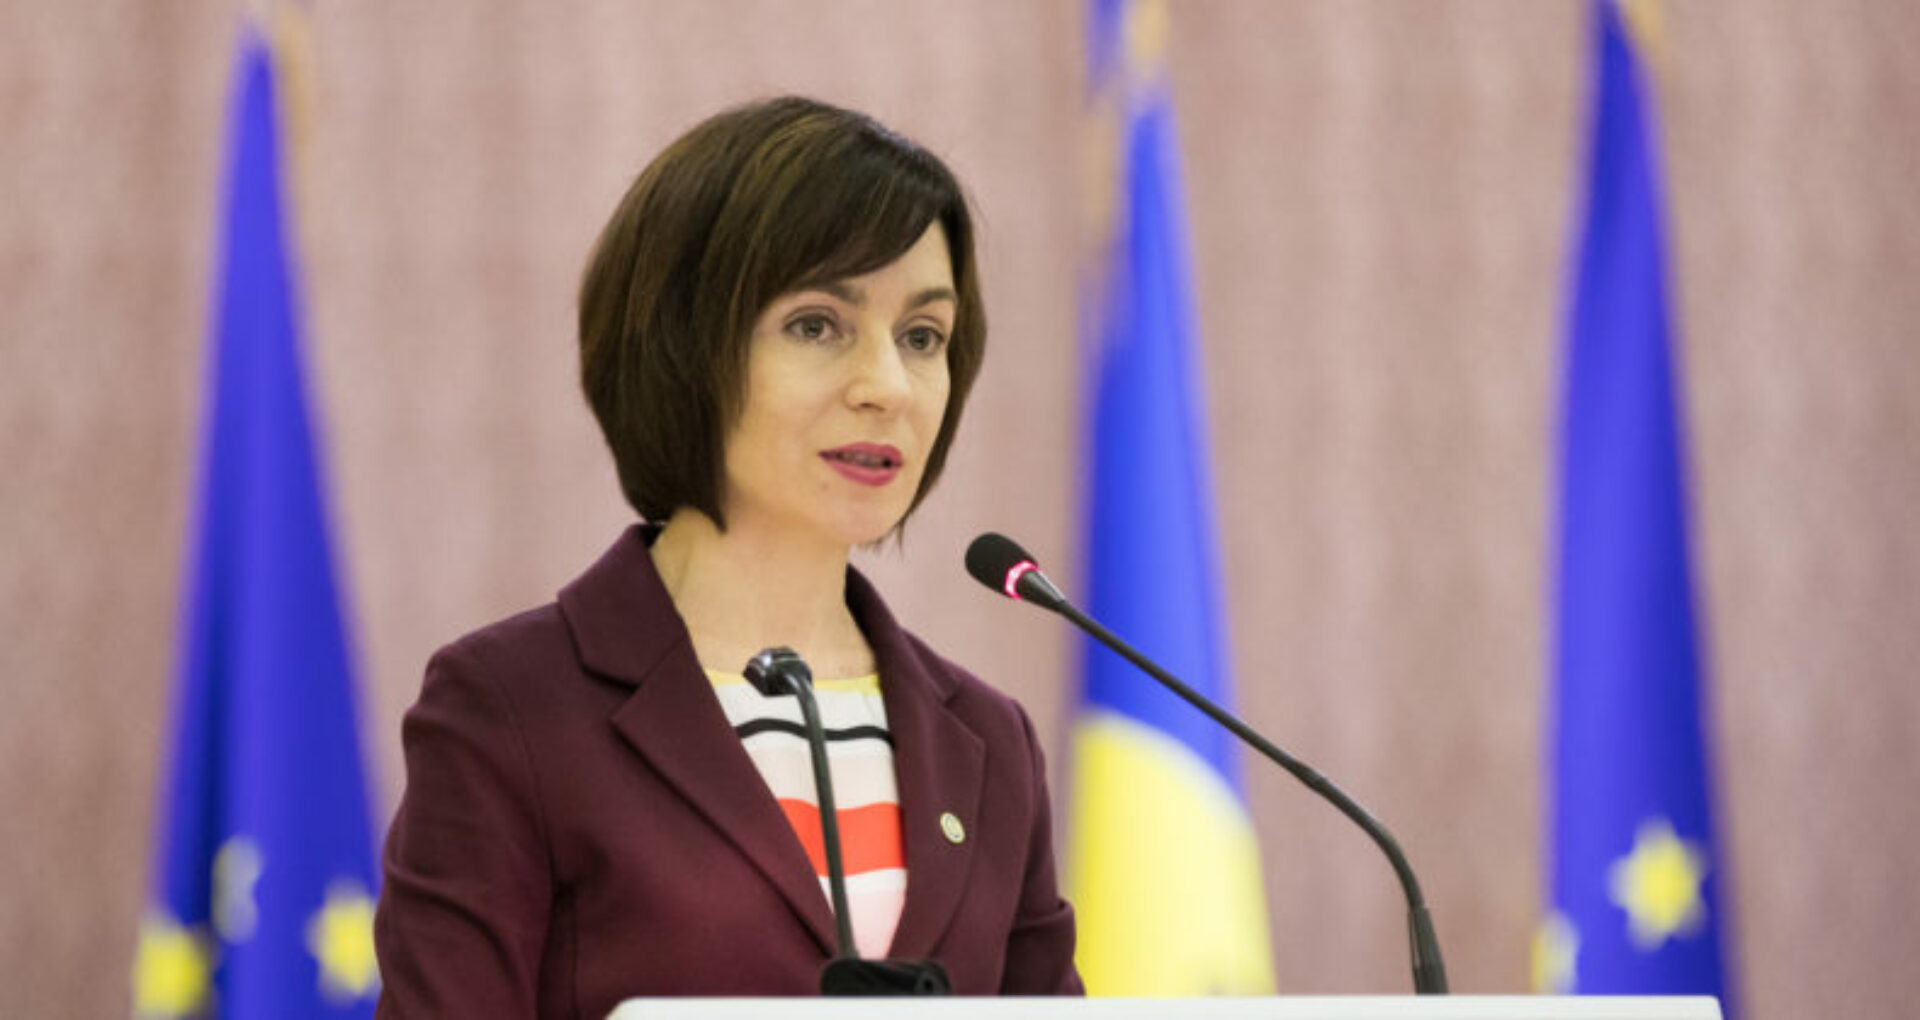 International Leaders Welcome Moldova's Election Results. Who Congratulated the New Moldovan President